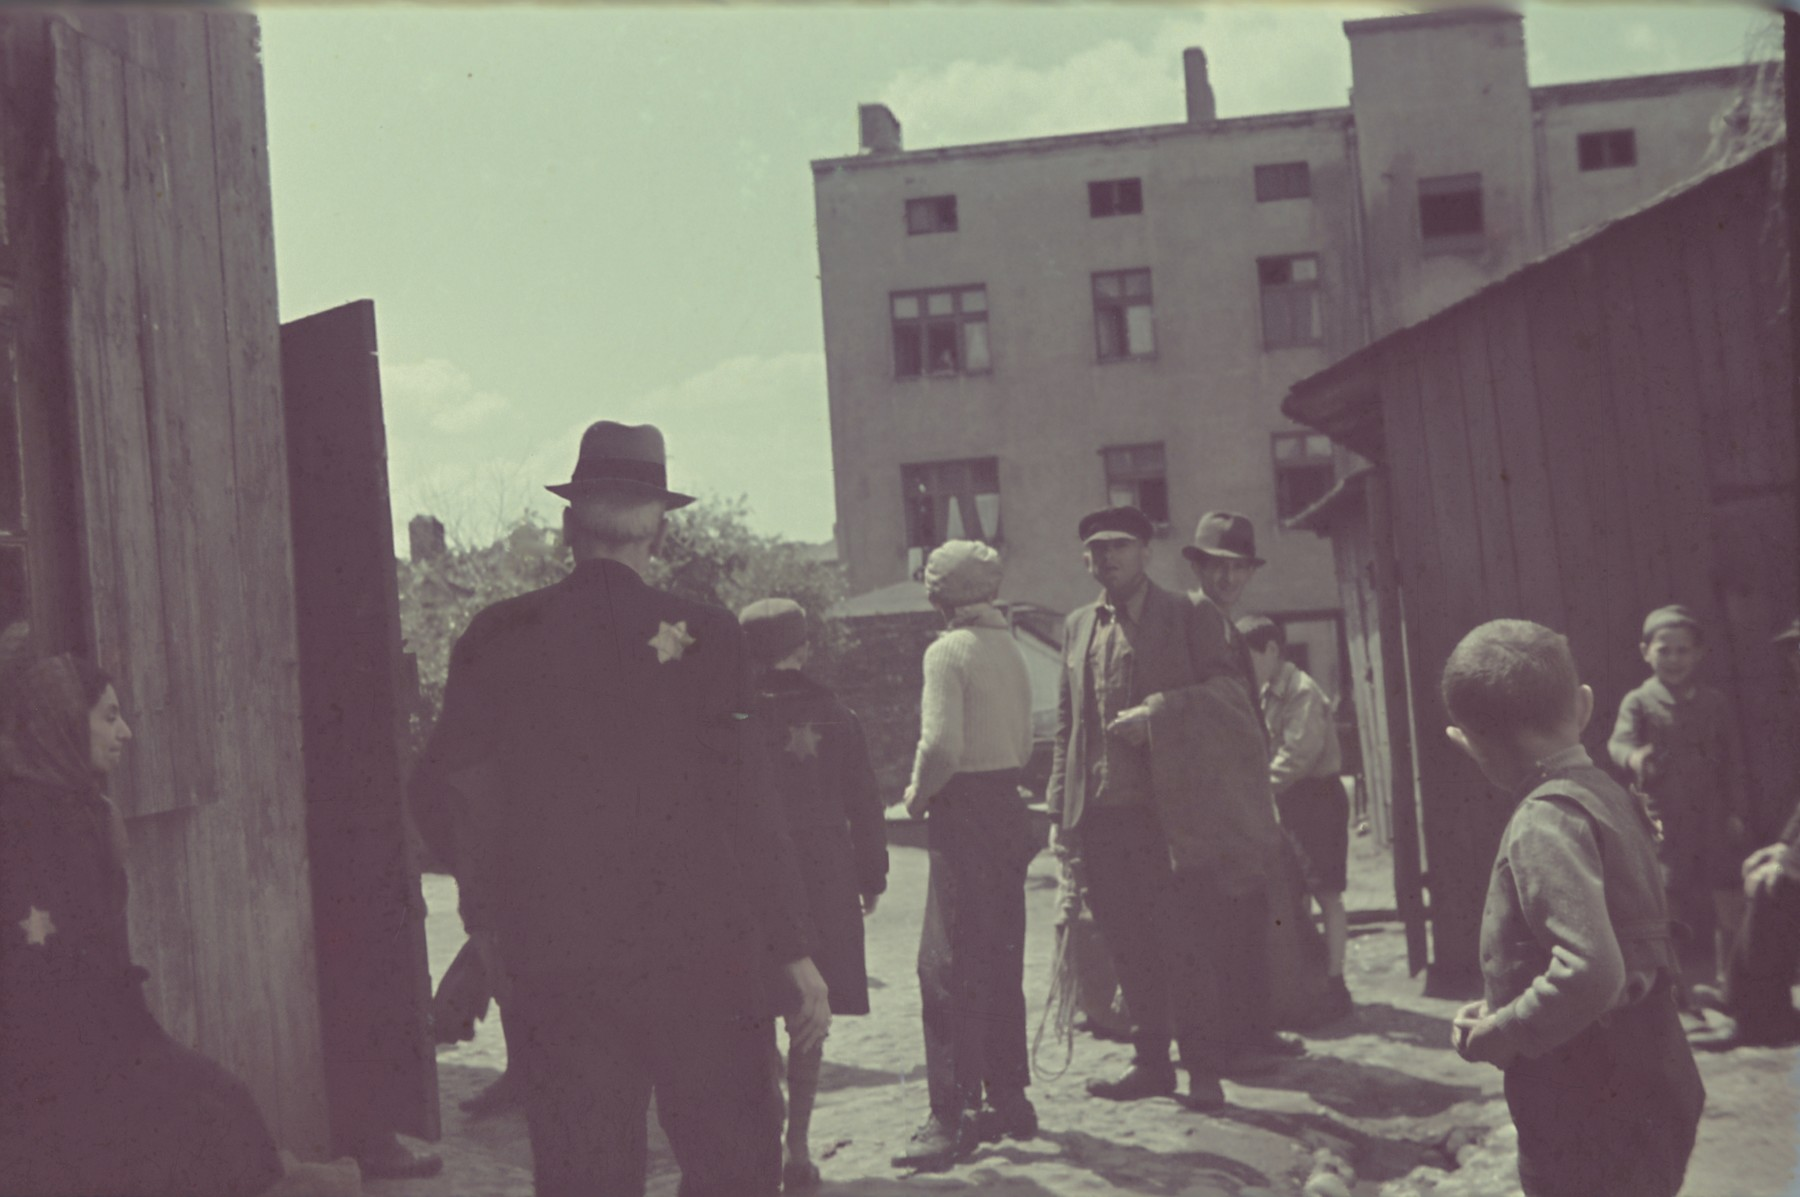 A group of ghetto residents congregate on a street of the Lodz ghetto.